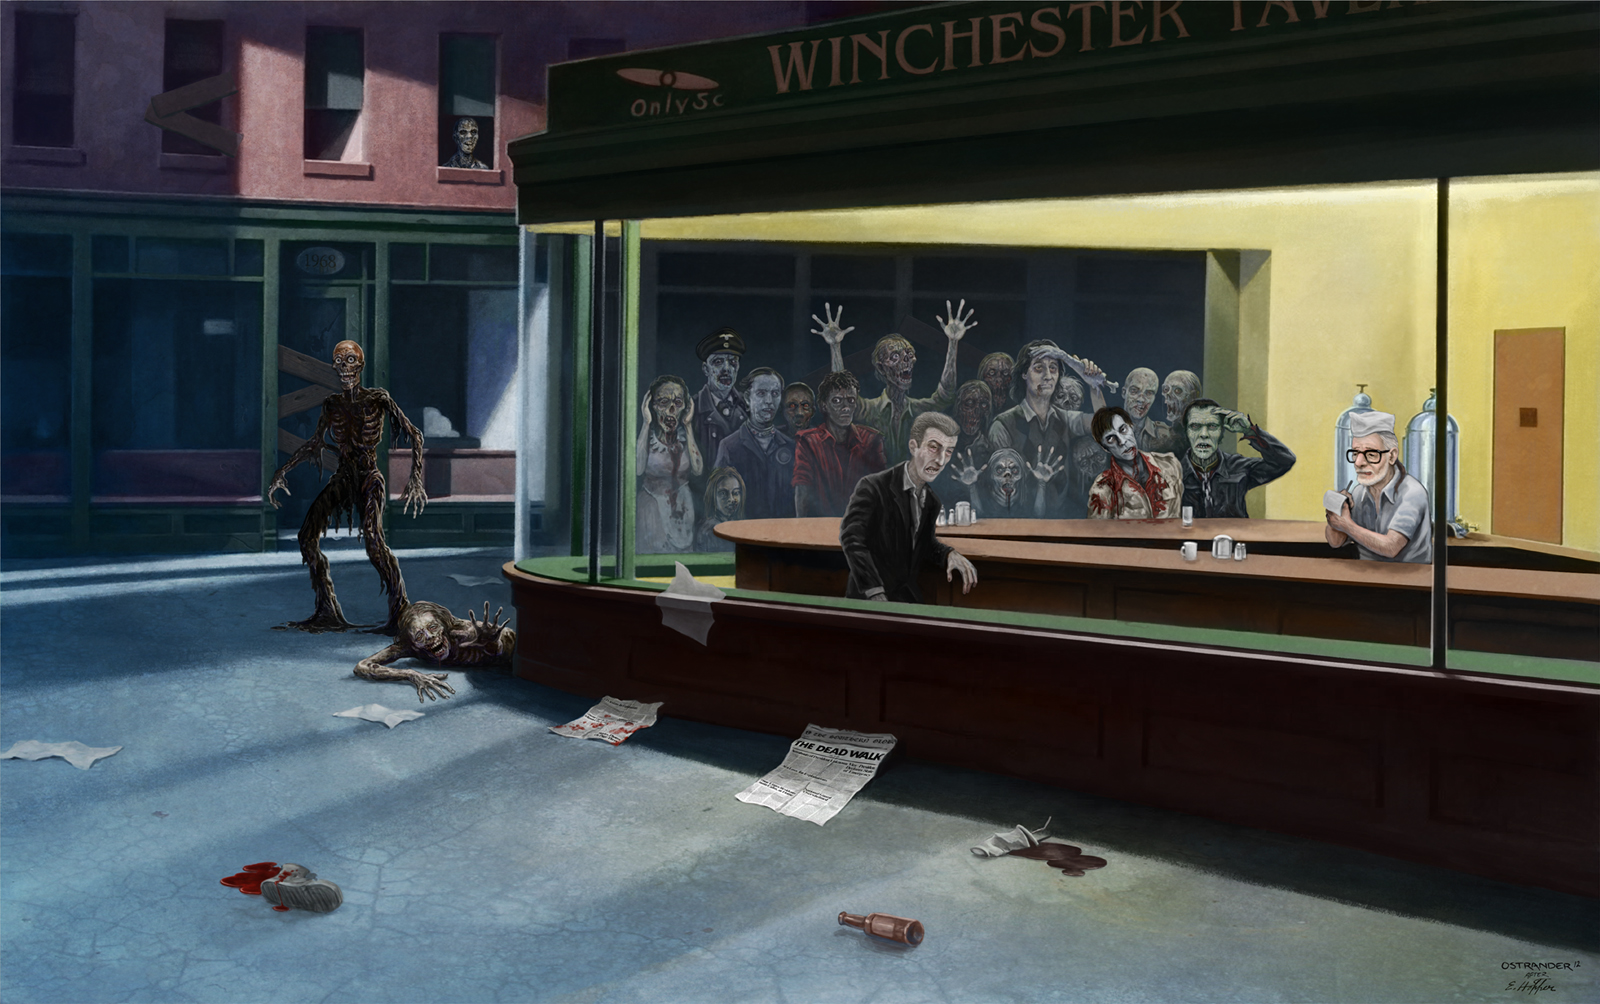 Geek Art Gallery: Fresh Take: Nighthawks